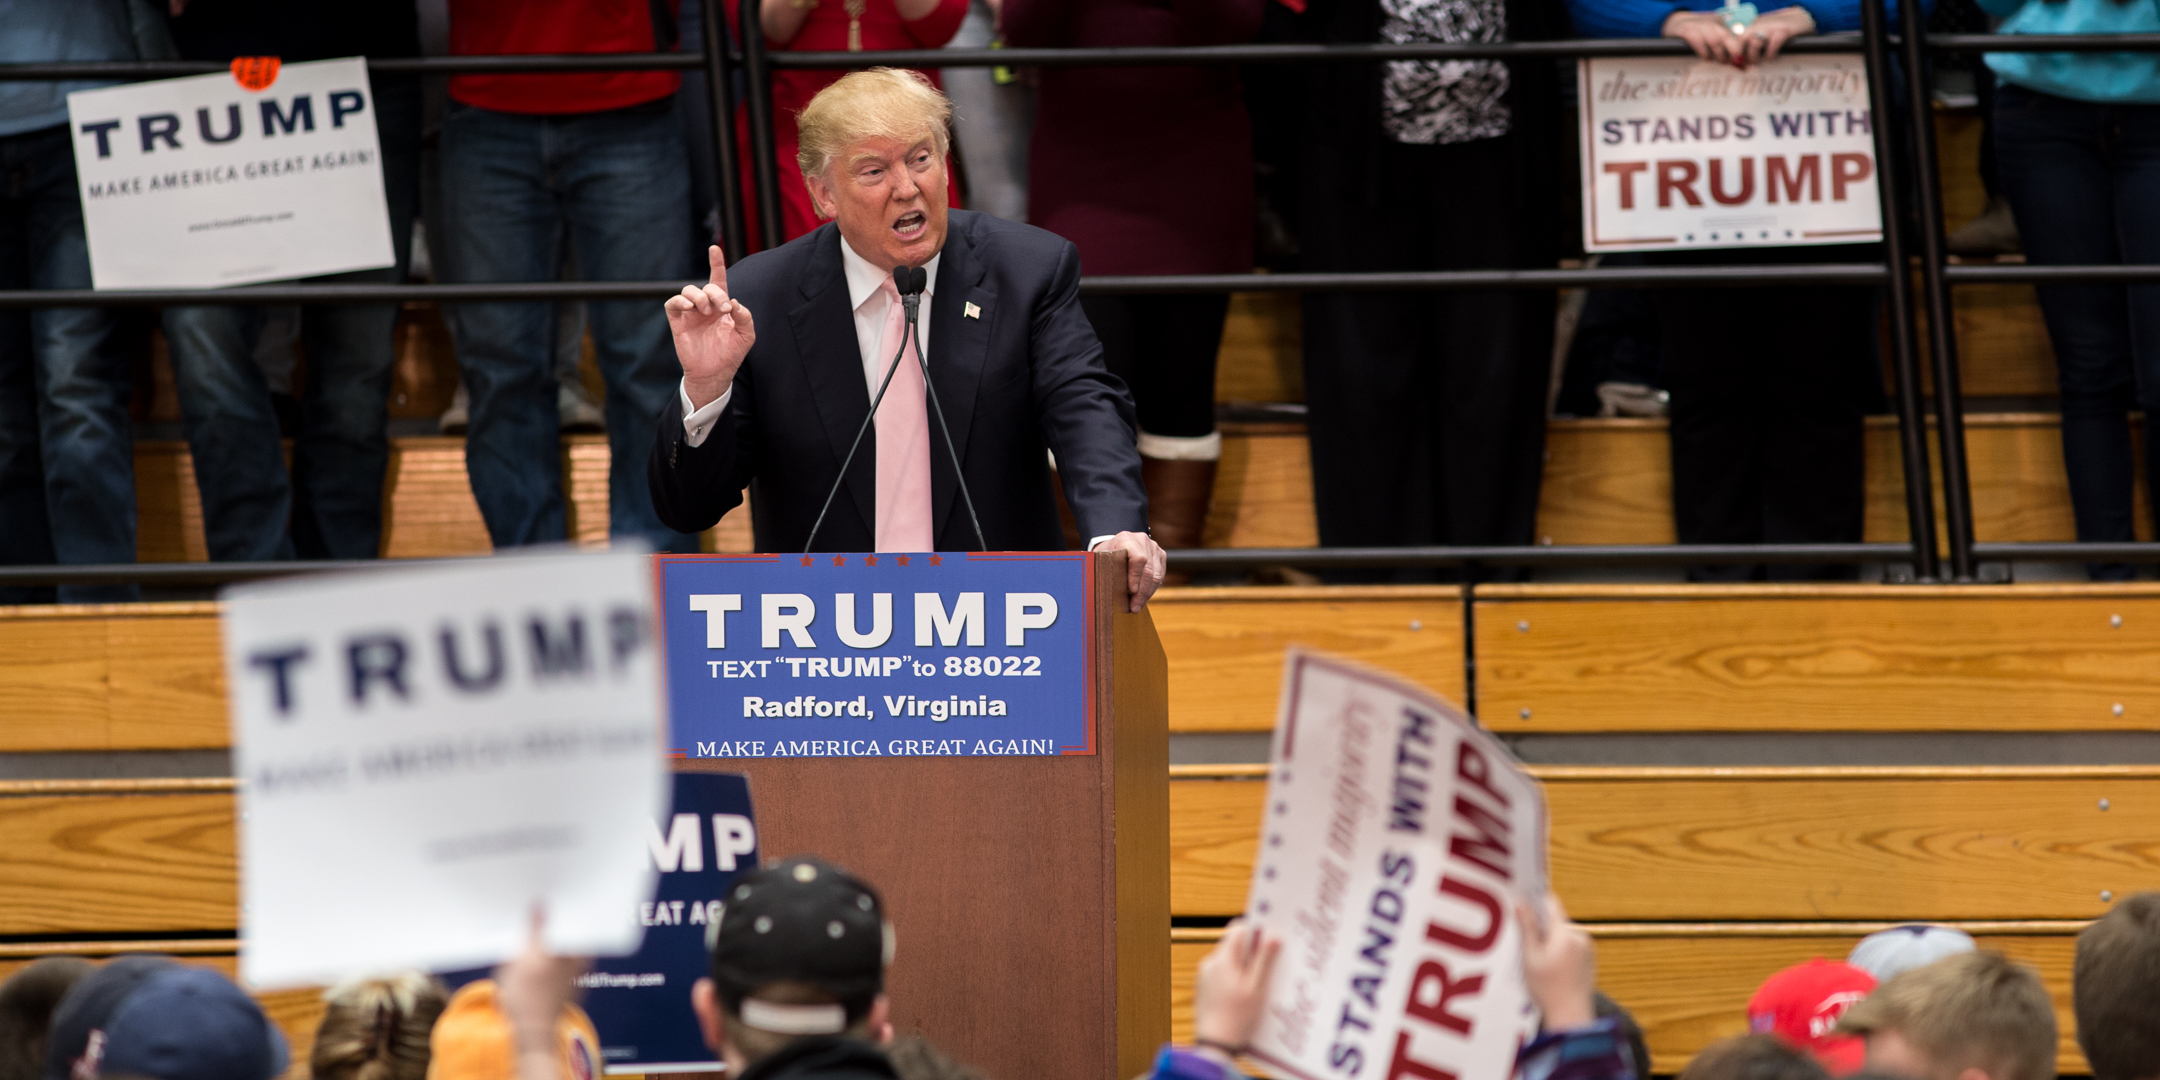 Donald Trump emphatically speaks in front of the crowd.